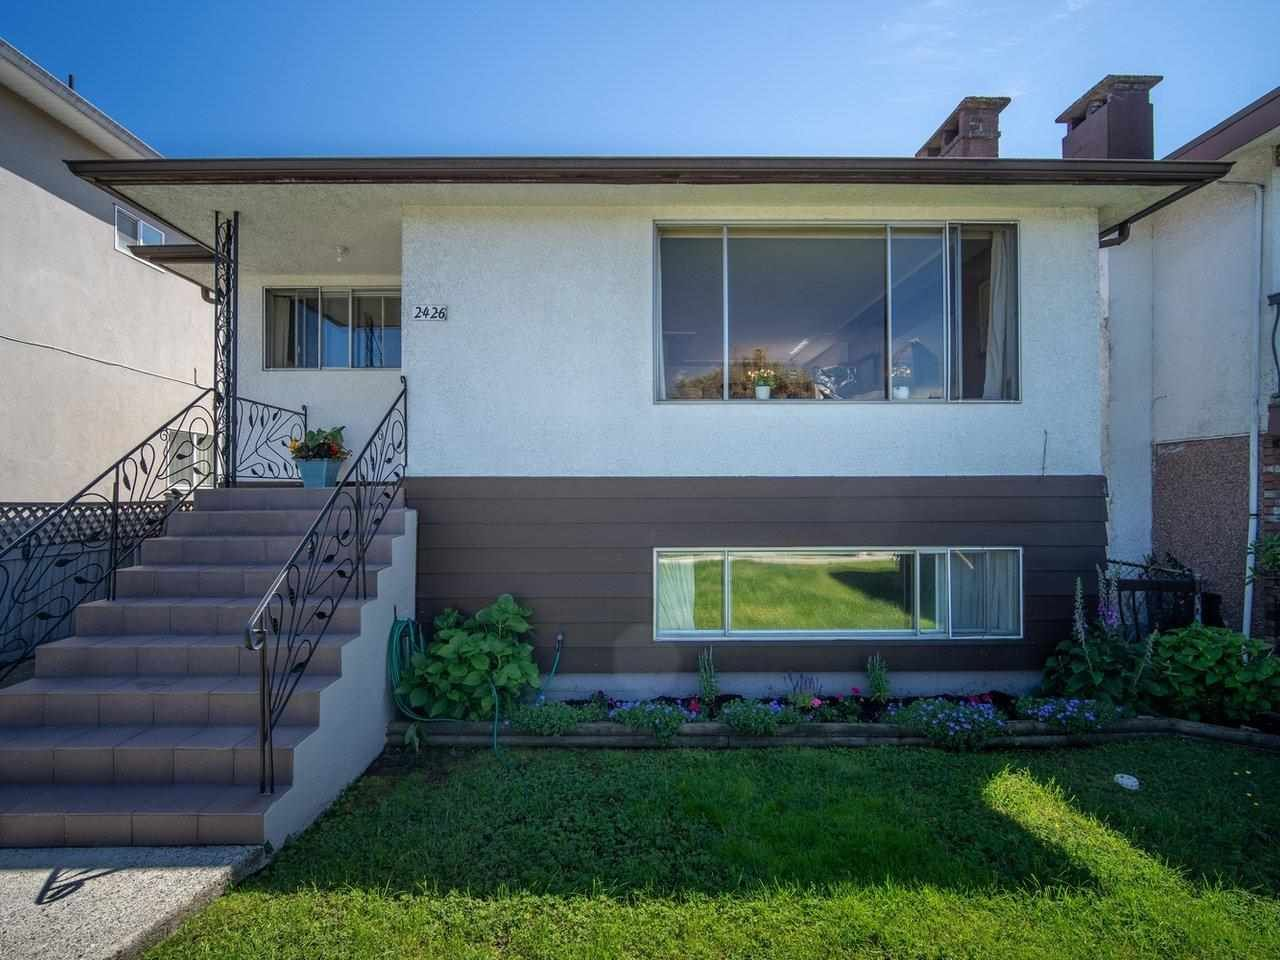 Main Photo: 2426 E GEORGIA Street in Vancouver: Renfrew VE House for sale (Vancouver East)  : MLS®# R2589923